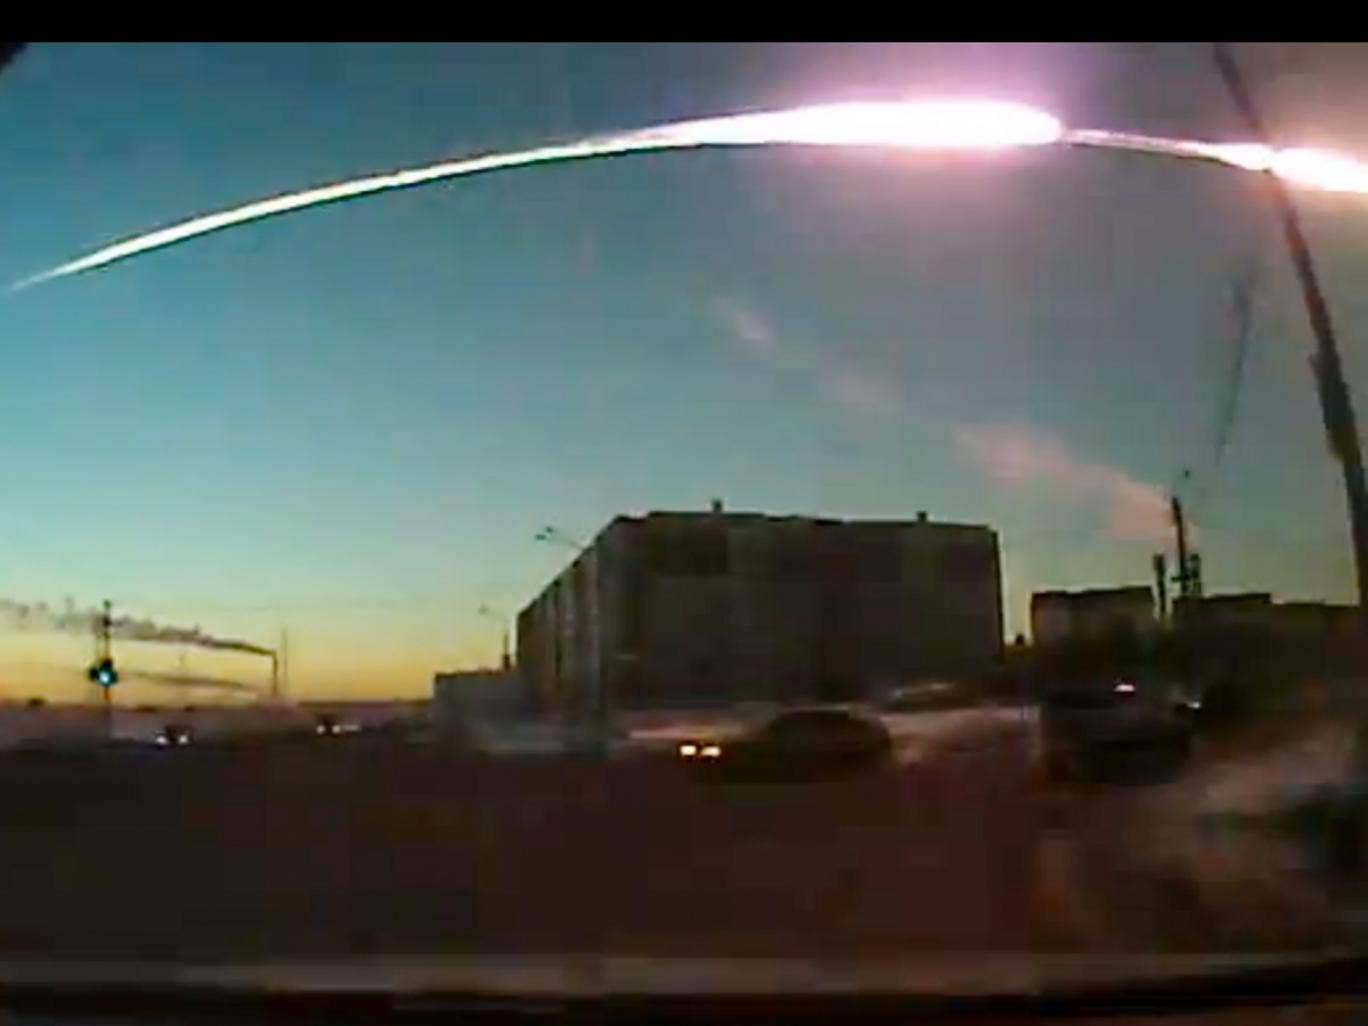 The view from a windscreen camera as the meteor streaked over the Urals